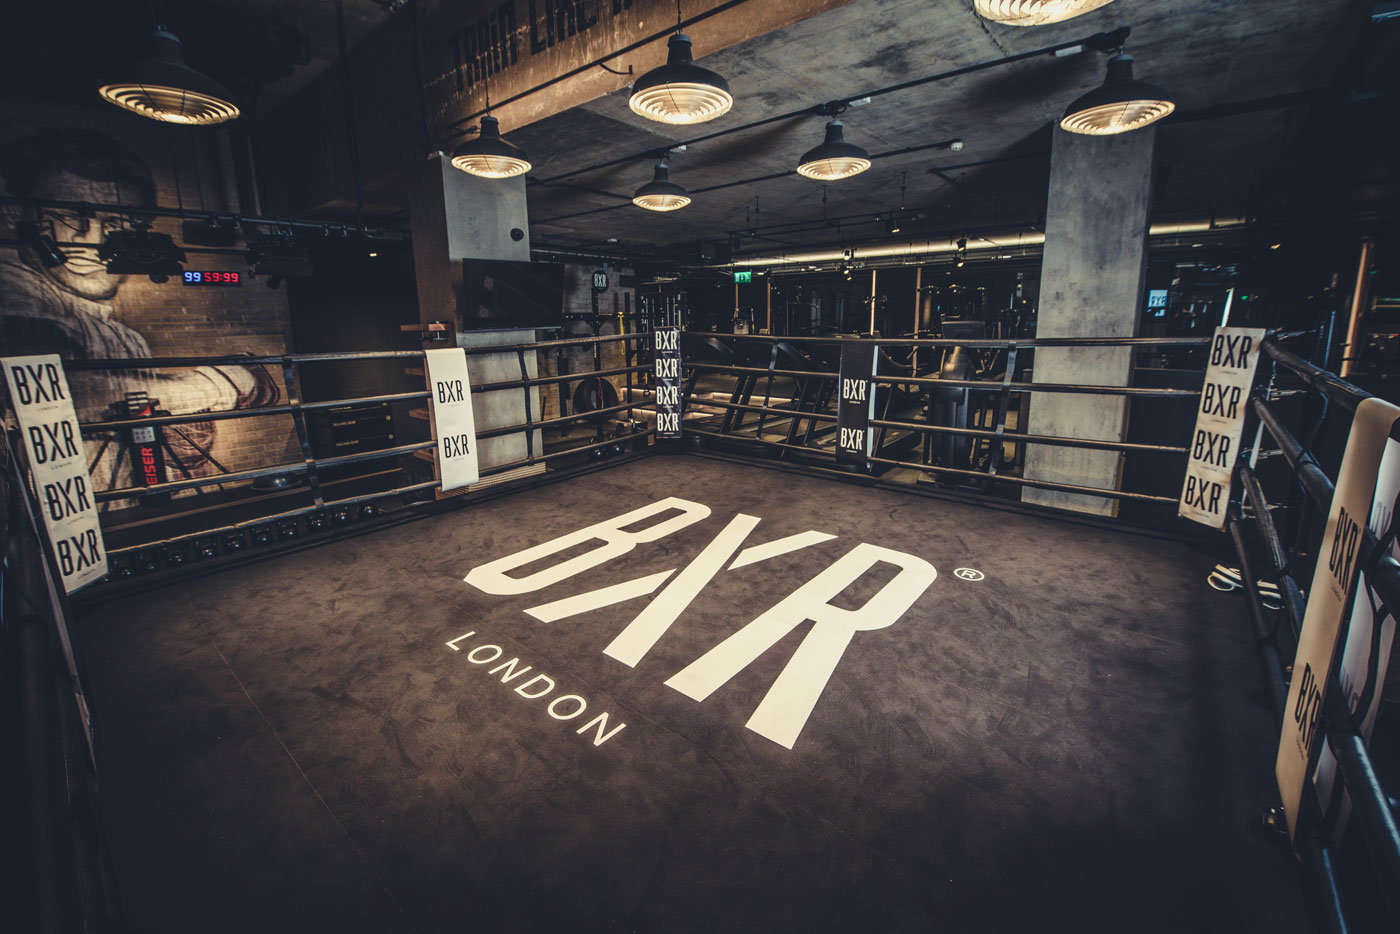 Review Of Bxr London The World 39 S First High End Boxing Gym